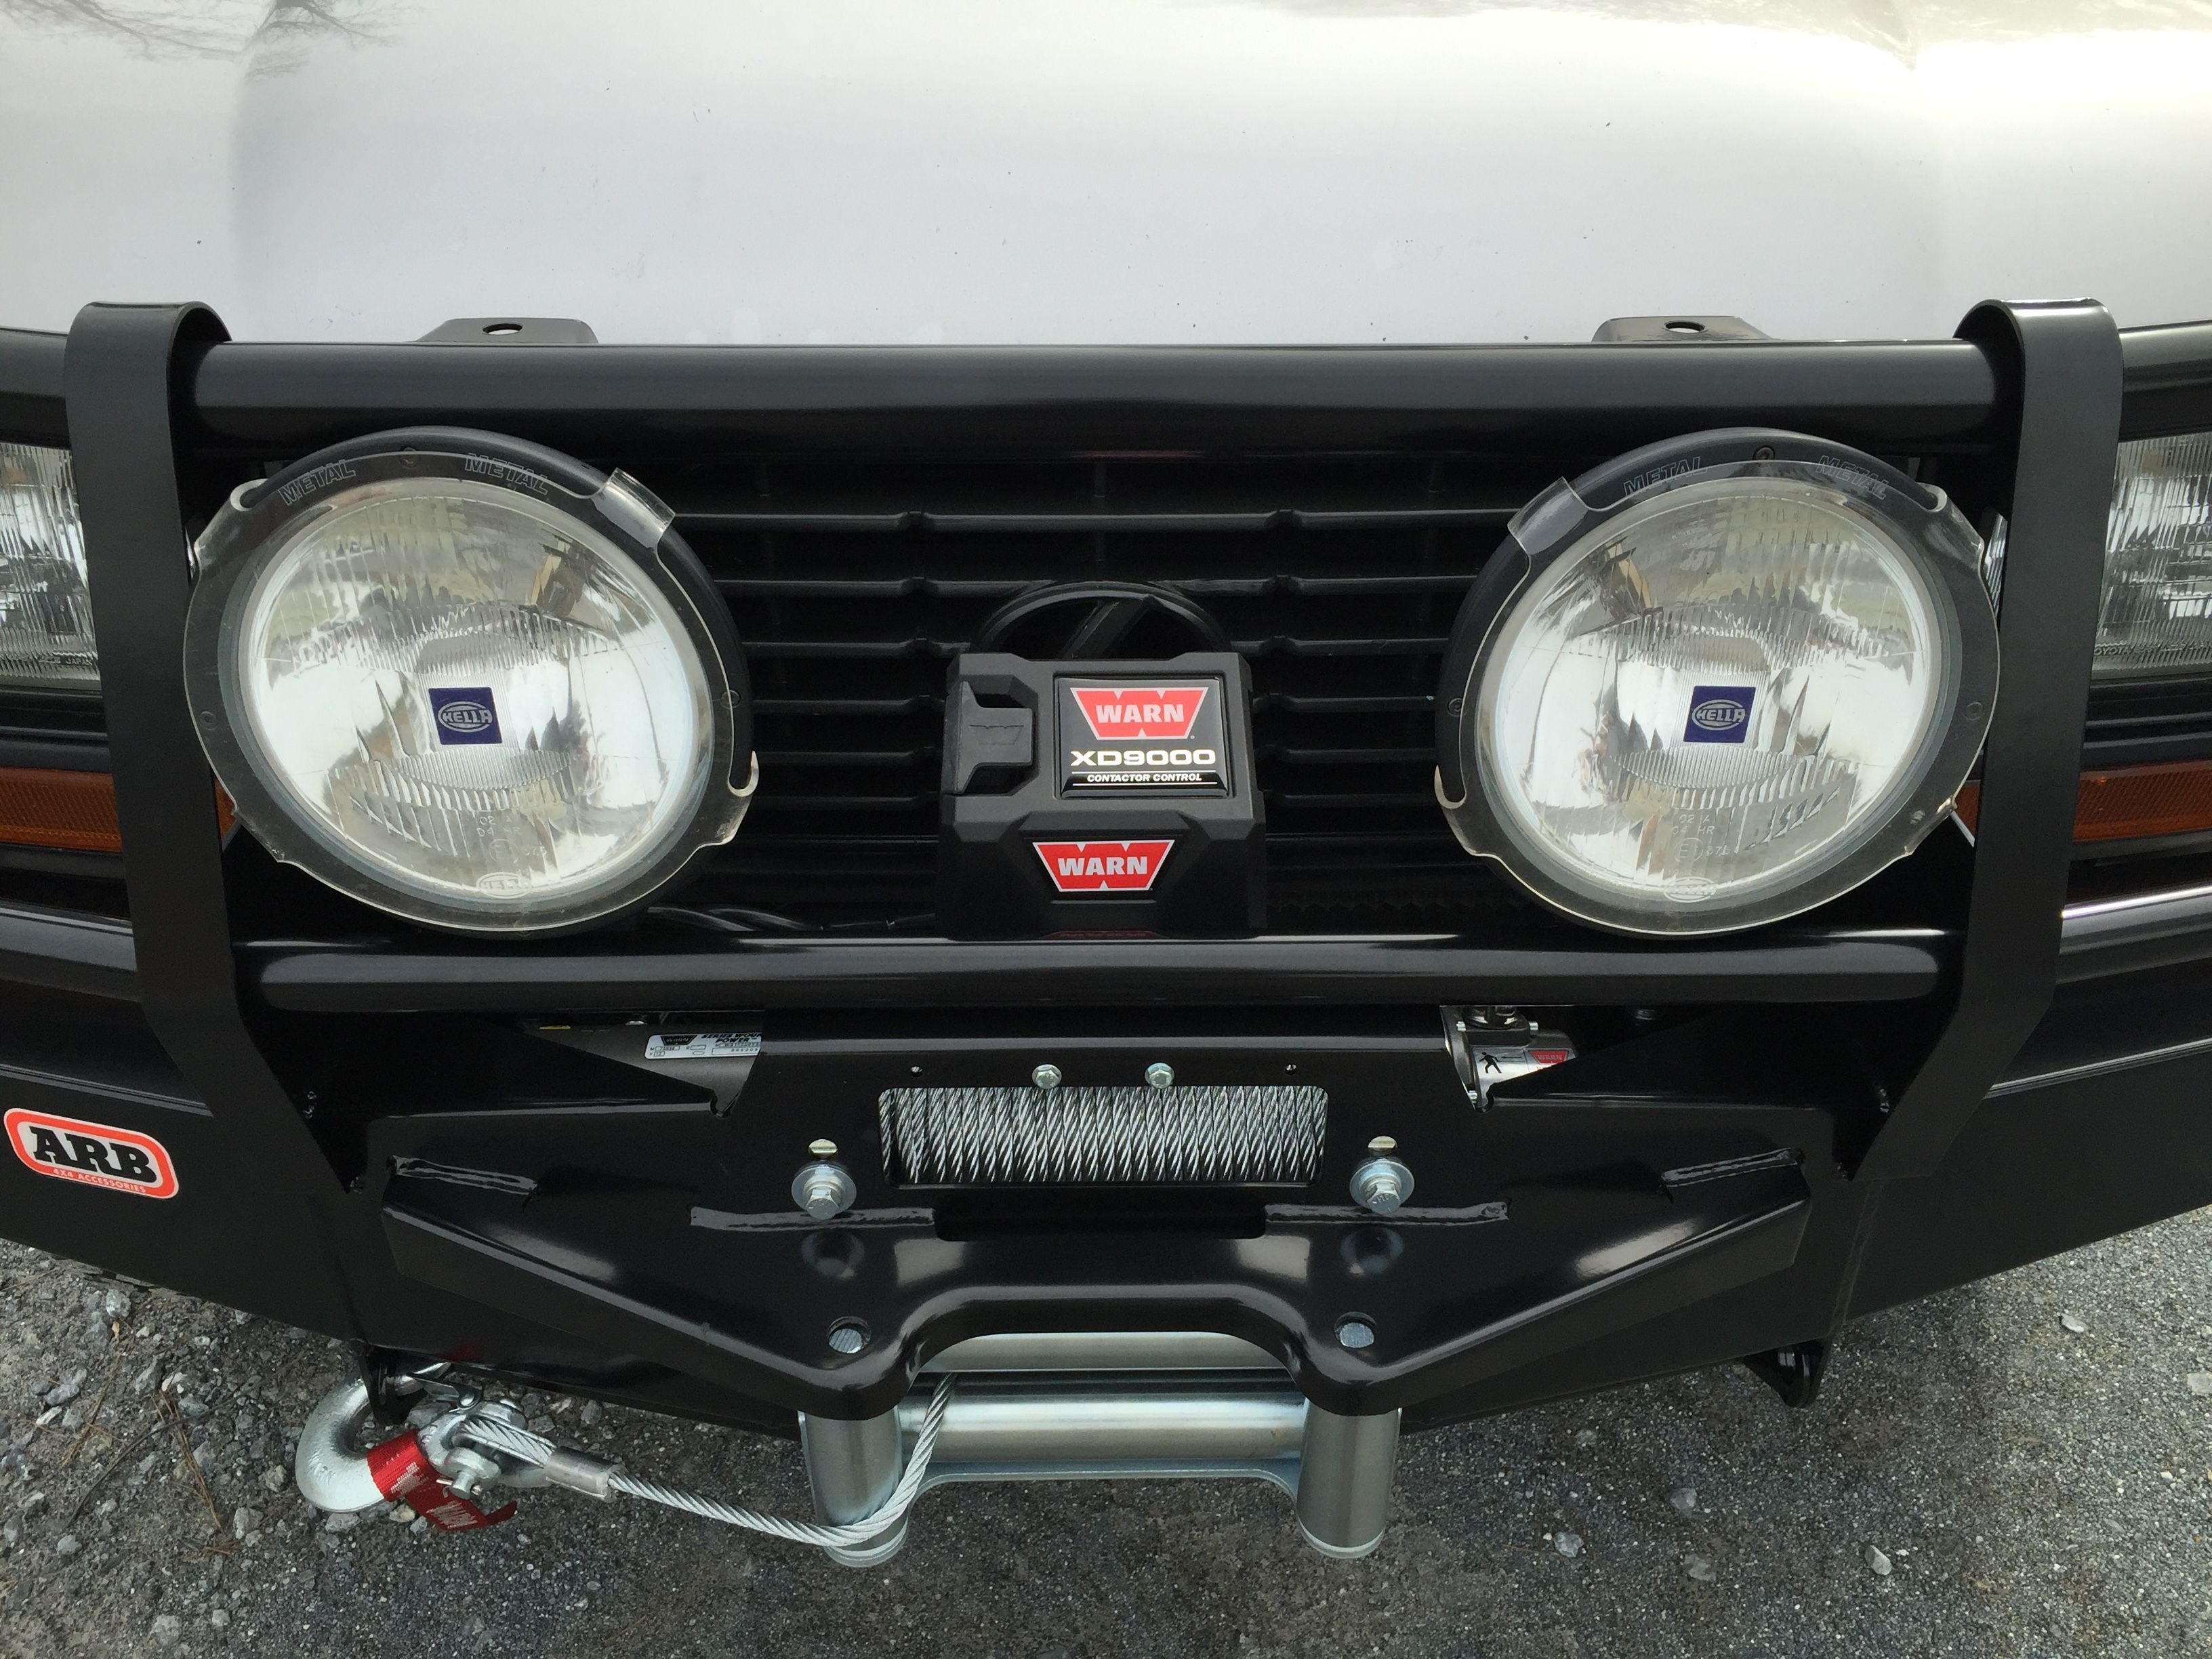 Warn xd9000 winch mounted on arb bull bar and hella 4000 euro beam warn xd9000 winch mounted on arb bull bar and hella 4000 euro beam auxiliary lights mozeypictures Images